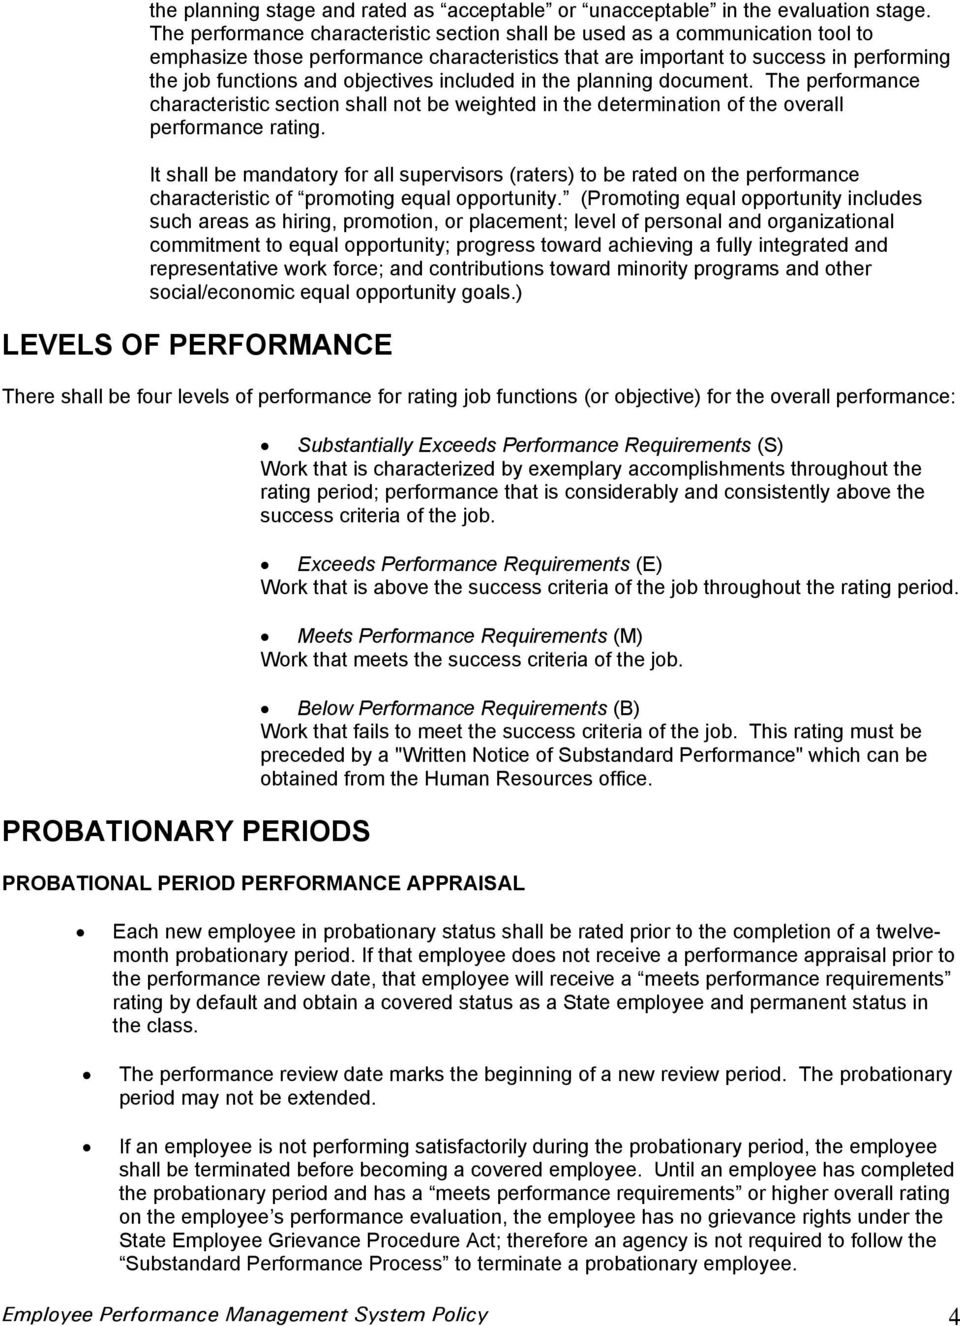 objectives included in the planning document. The performance characteristic section shall not be weighted in the determination of the overall performance rating.